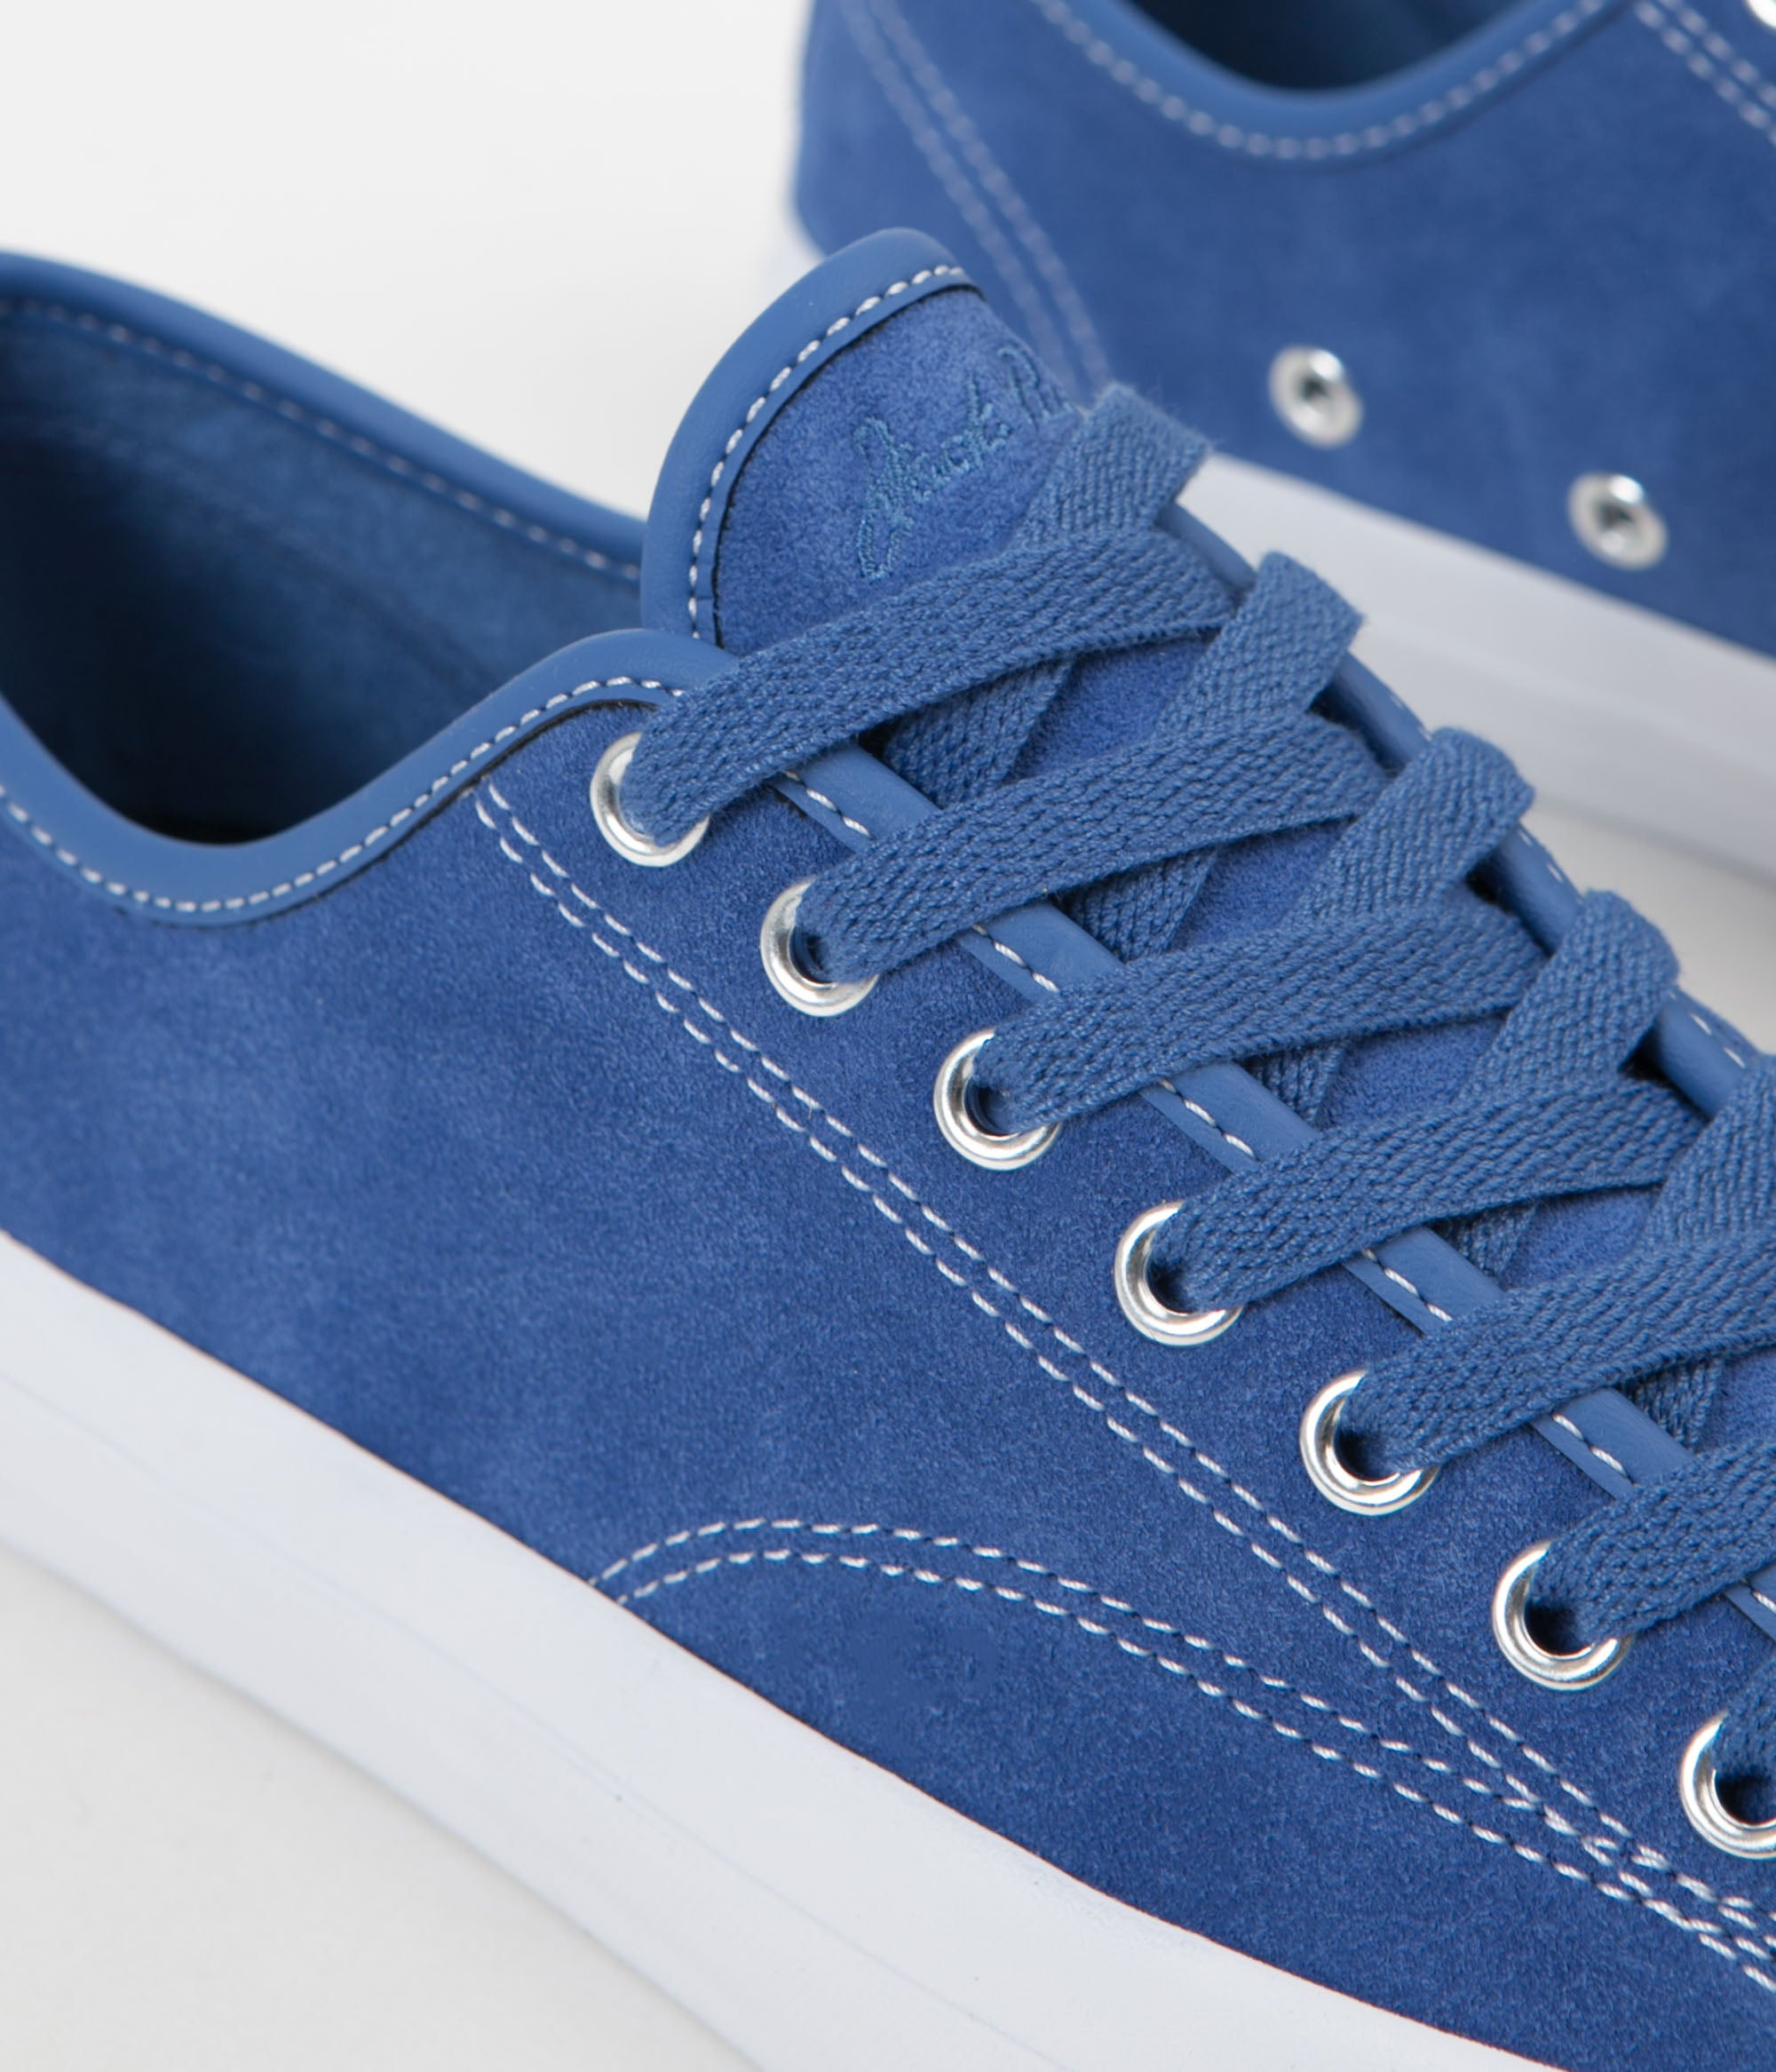 b3c9b2c10db5b4 ... Converse Jack Purcell Pro Ox Shoes - Nightfall Blue   Nightfall Blue    White ...